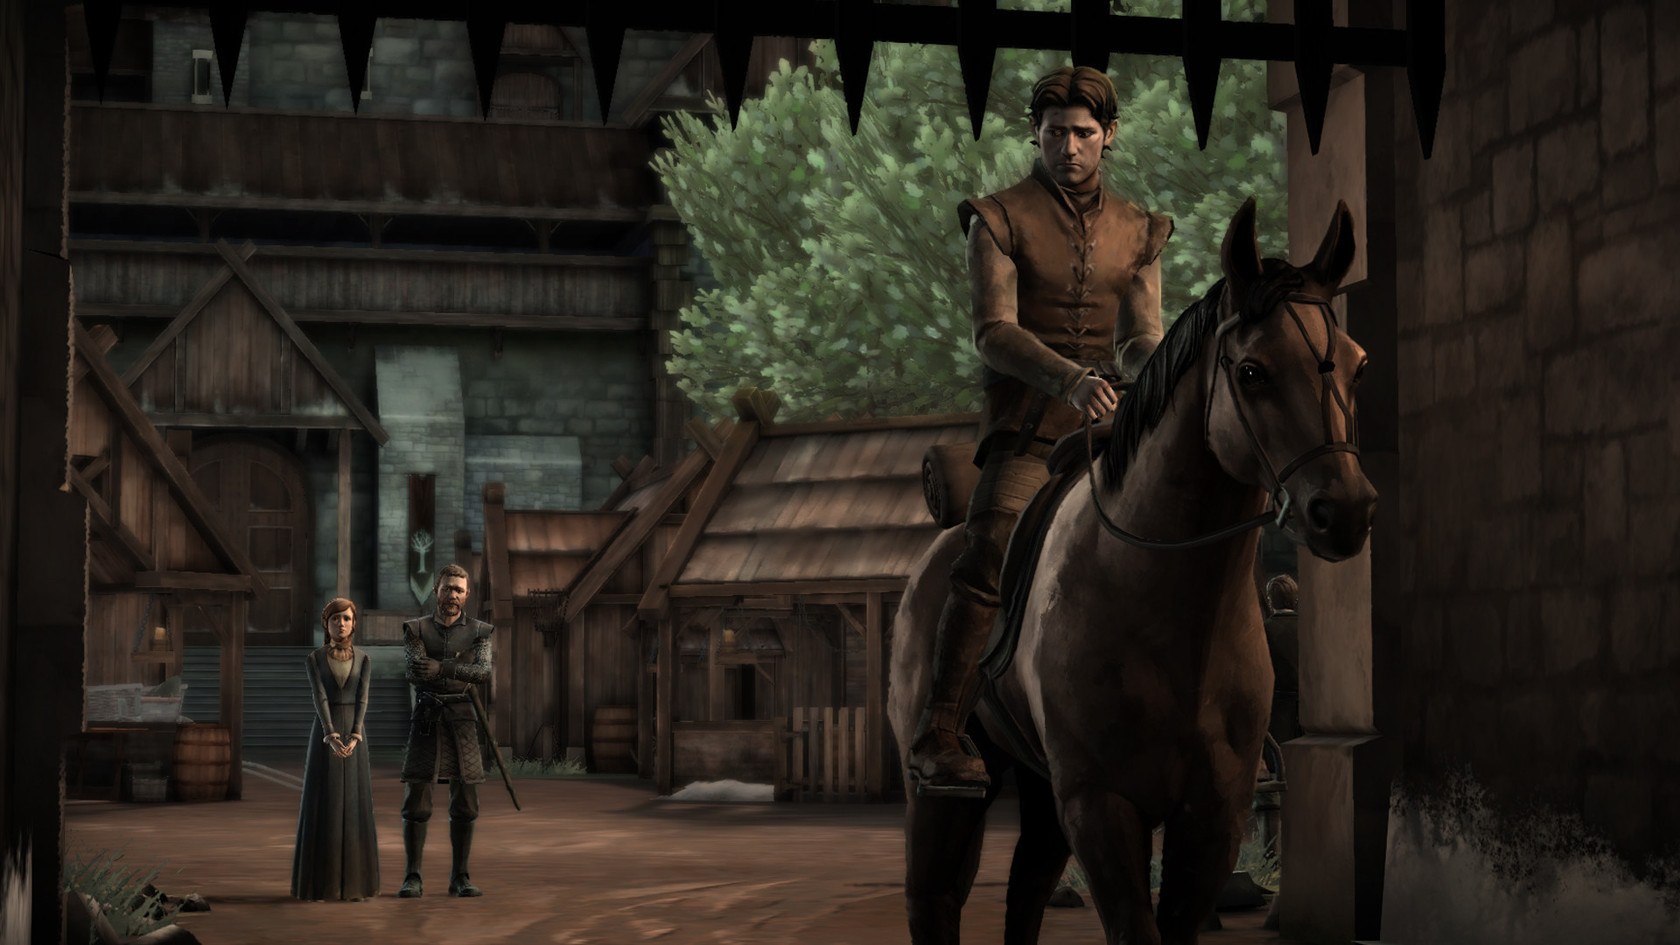 Game of Thrones - A Telltale Games Series | macgamestore.com